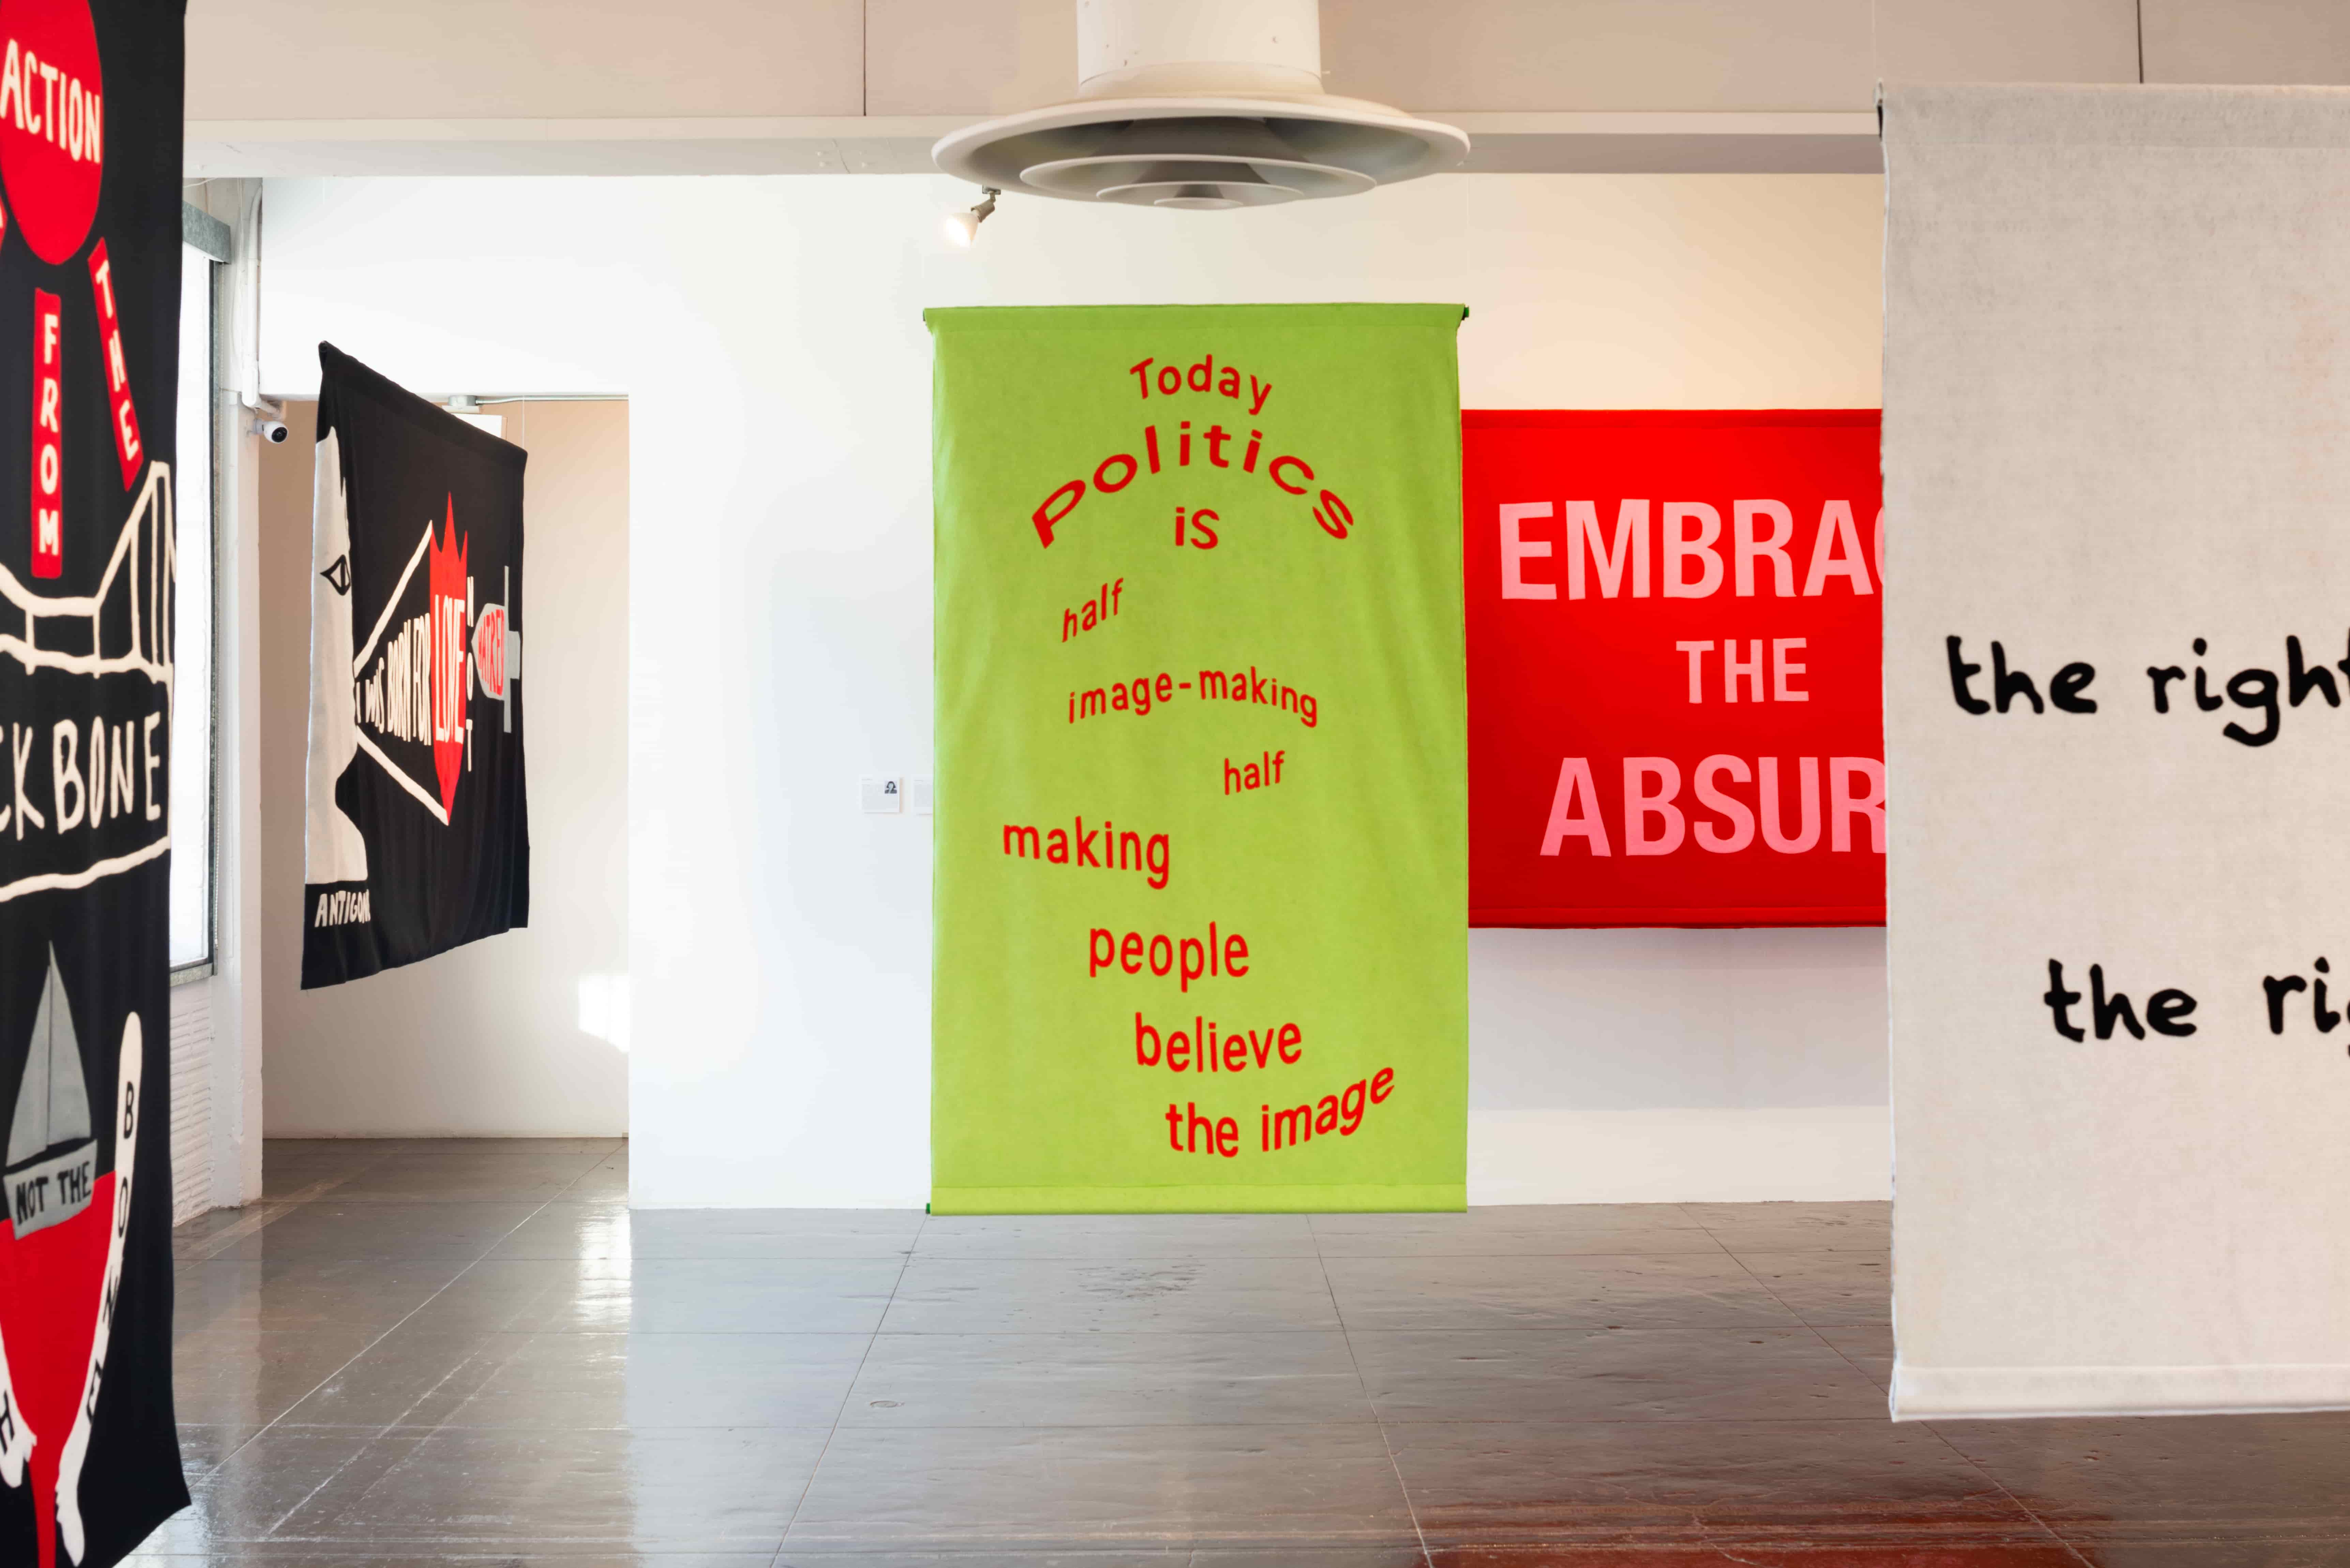 Tania Bruguera, Today politics is half image-making half making people believe the image (2018). Felt banner.Image courtesy of Artpace